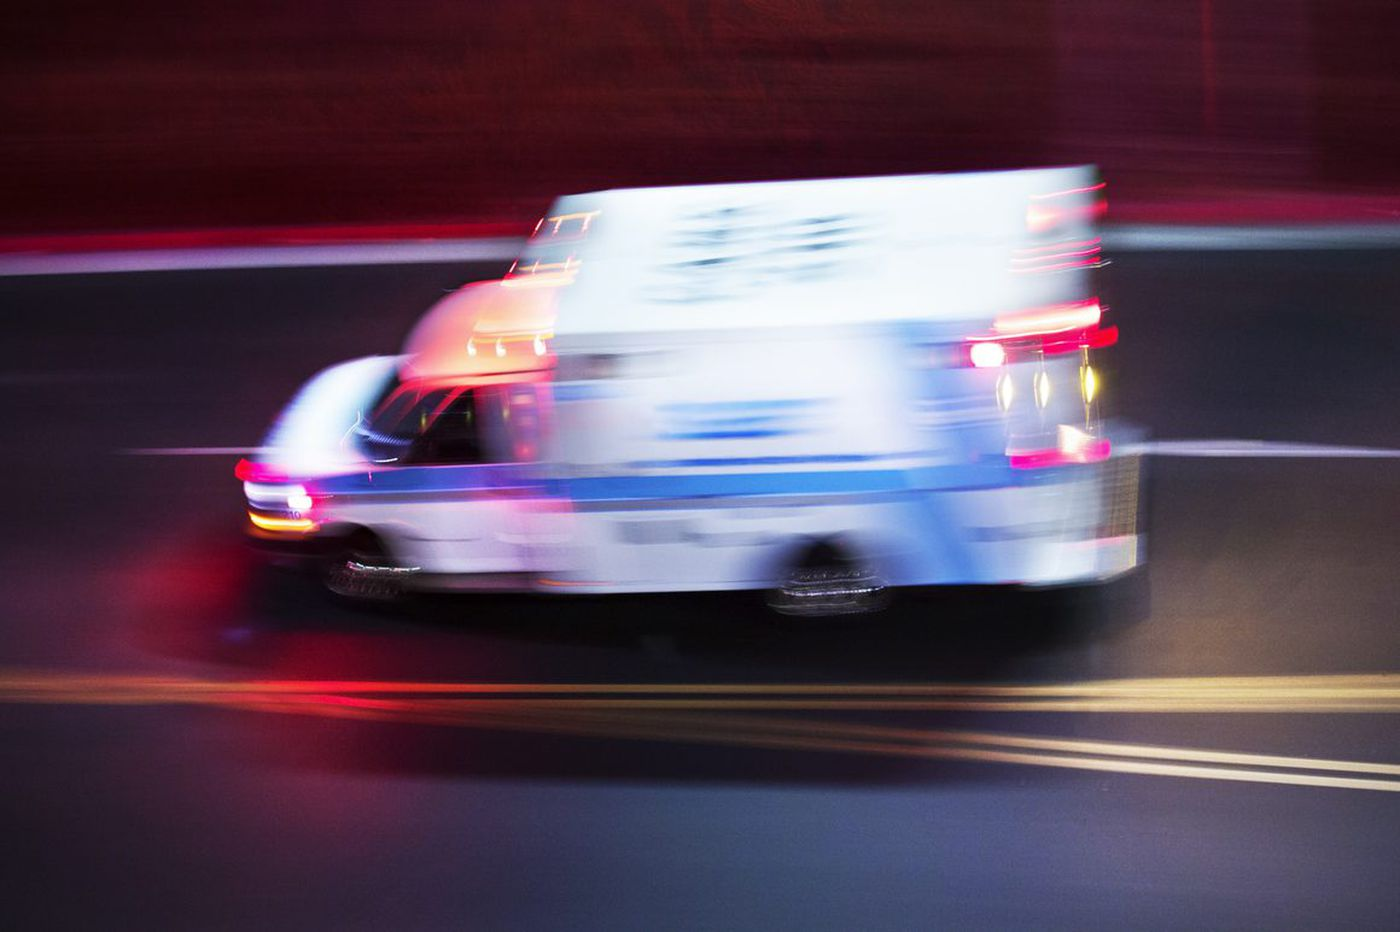 In an emergency, what will you pay for an ambulance ride?